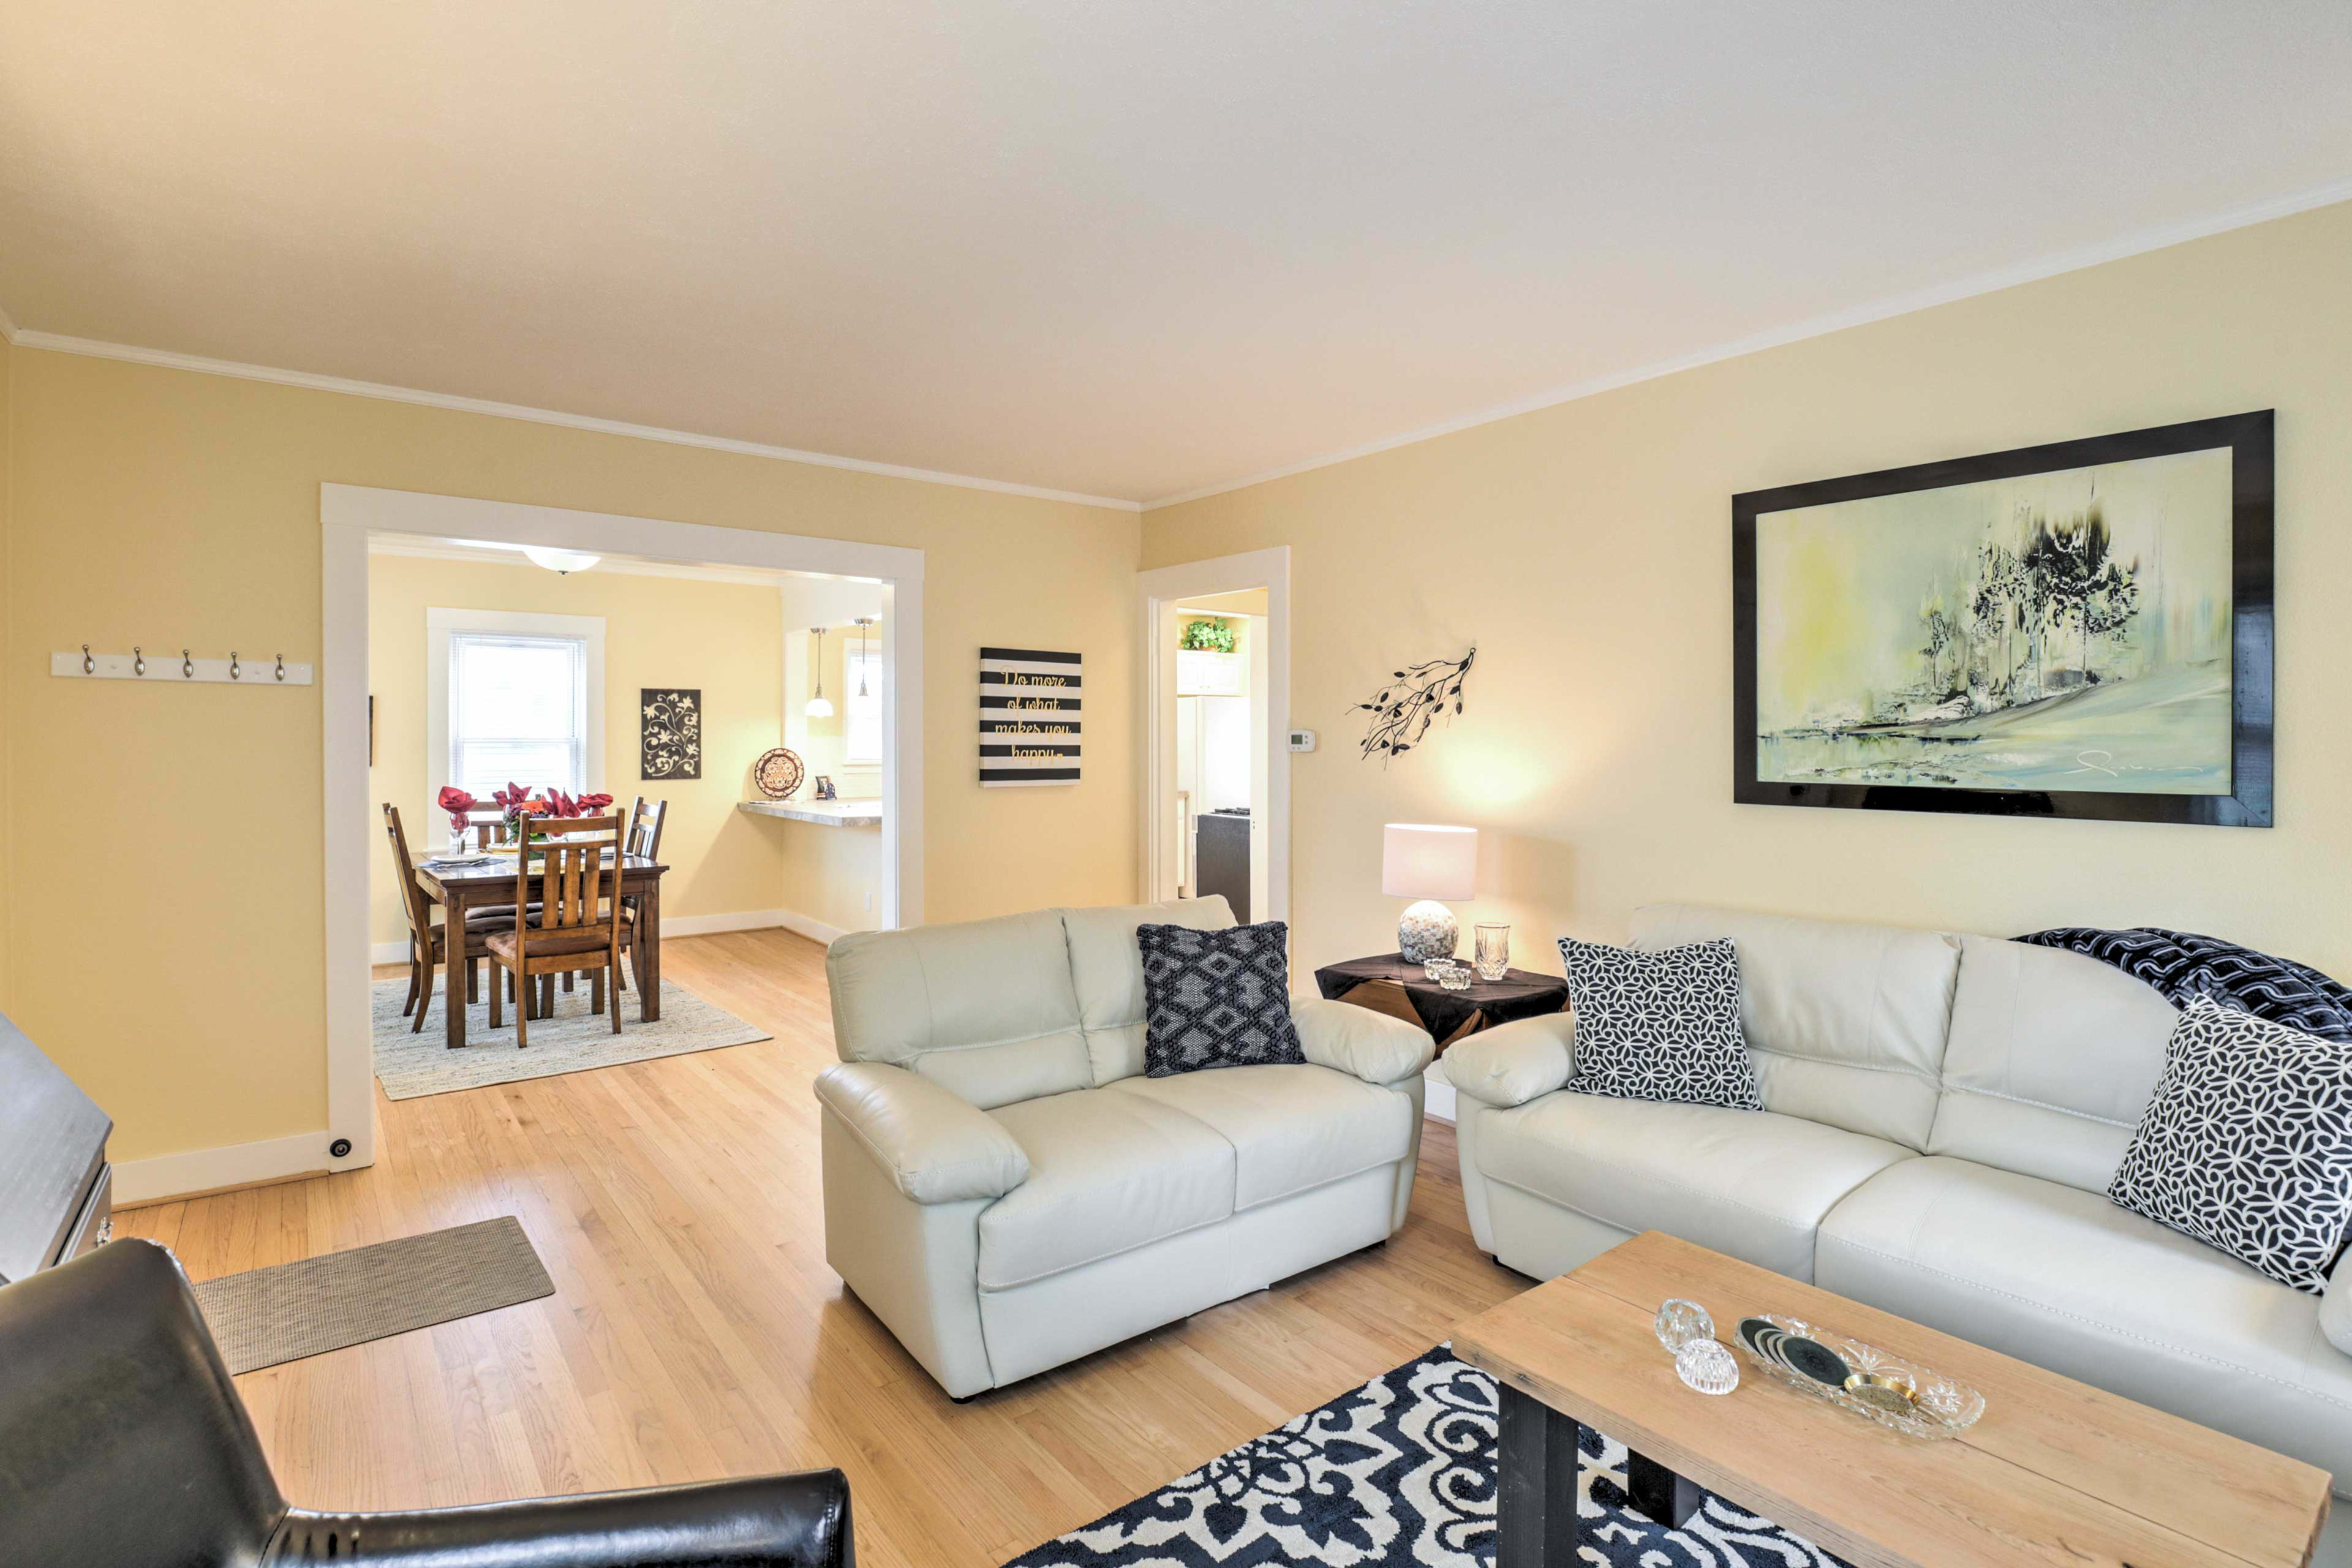 Gather with your loved ones in the cozy living room.